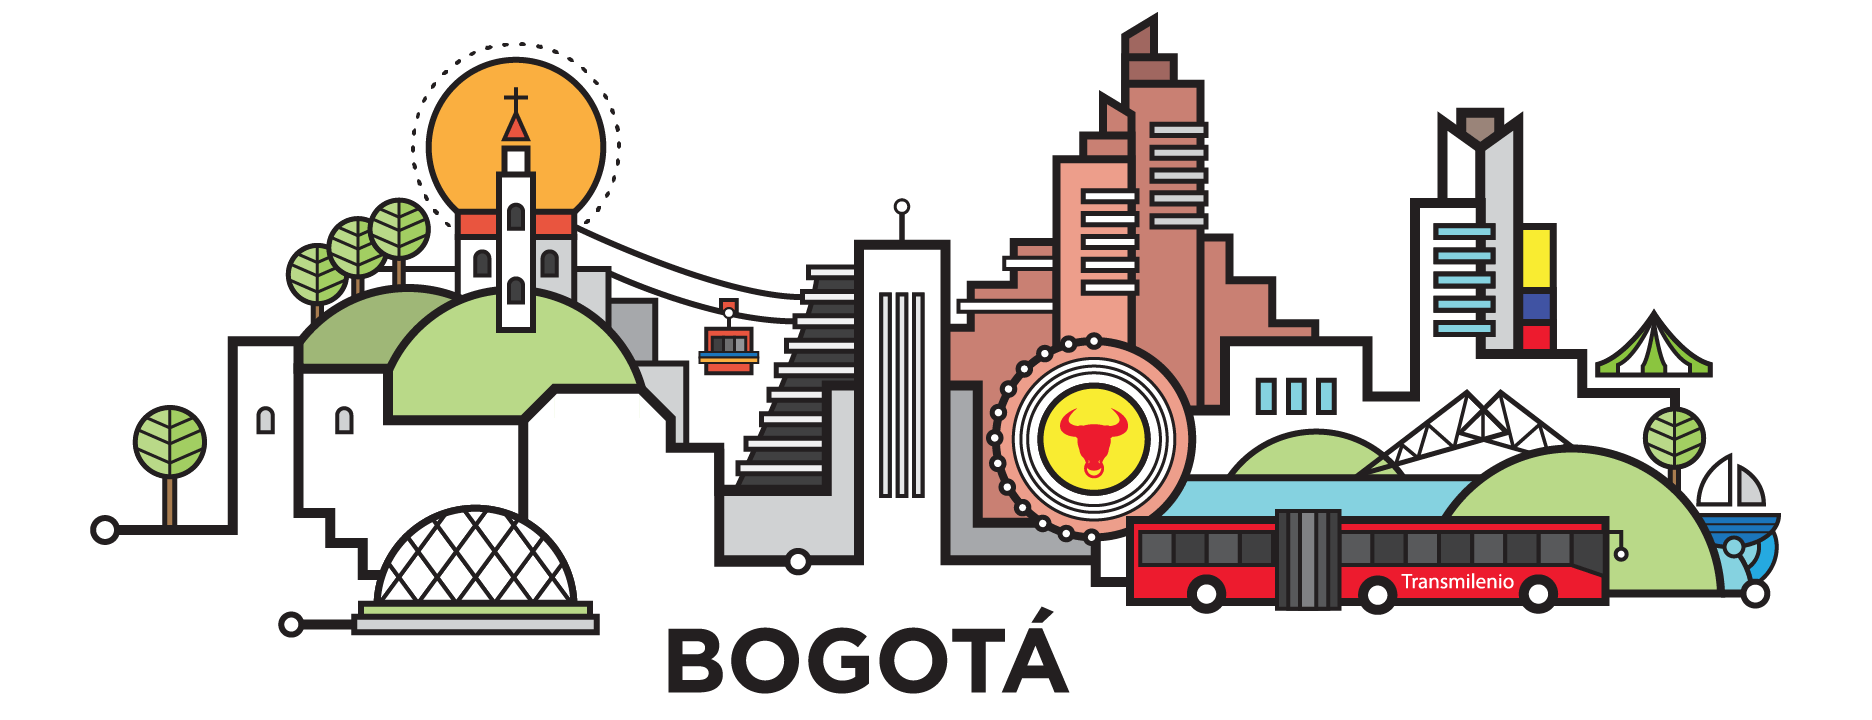 bogota-cityline-illustration-by-loogart